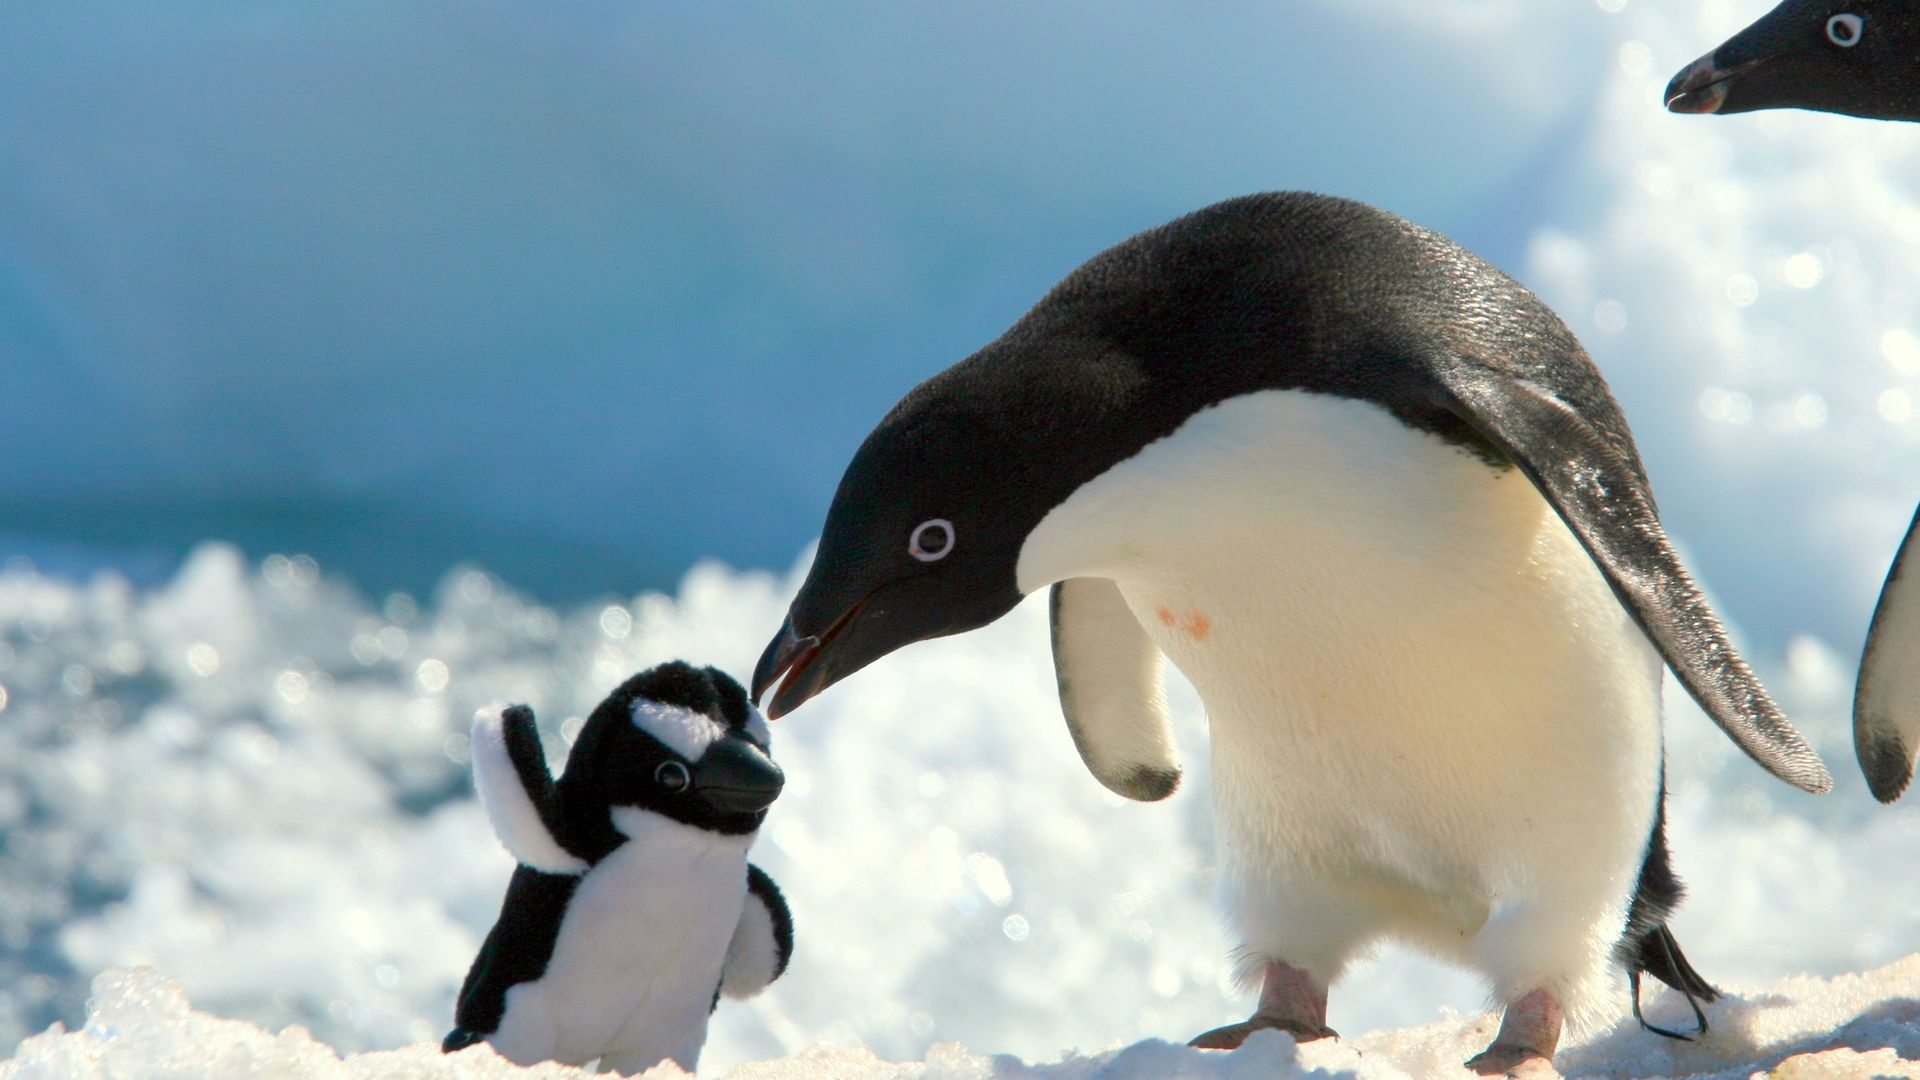 Penguin Baby Love Wallpaper   Wallpaper Stream 1920x1080